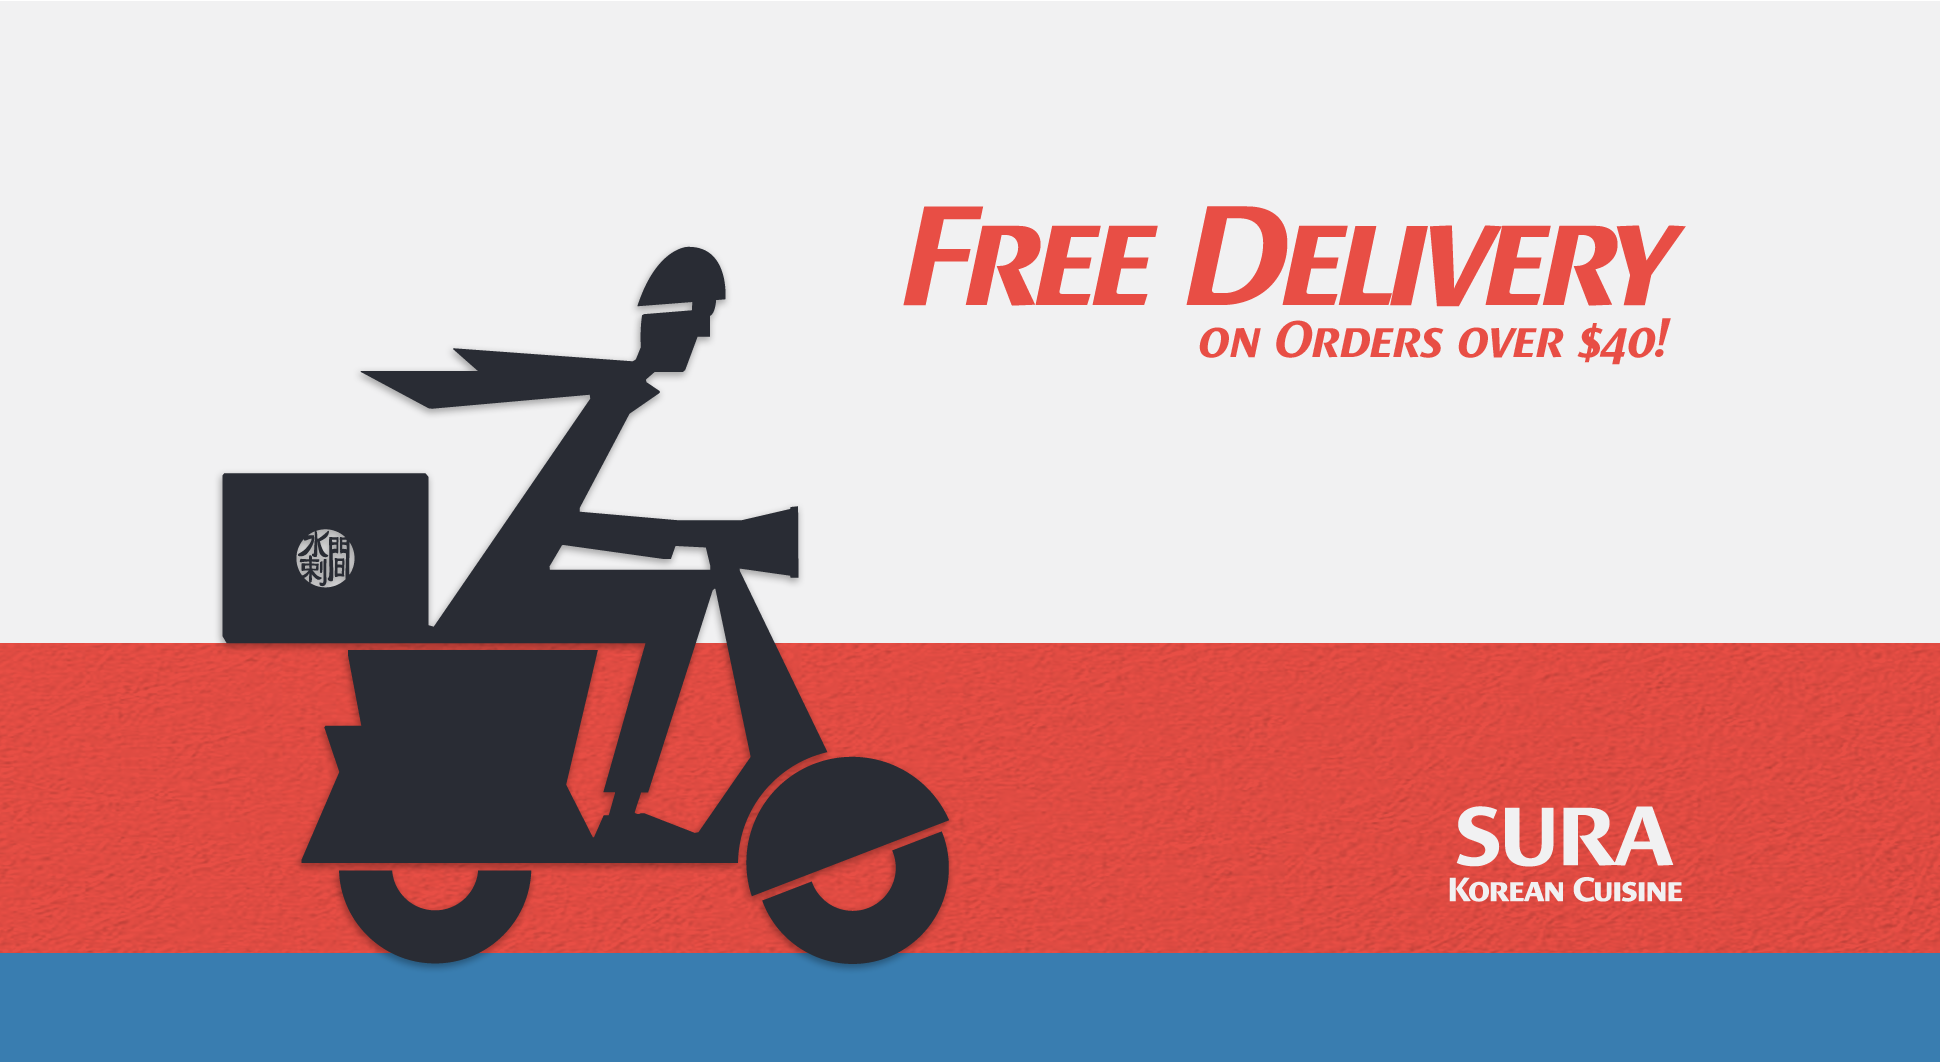 Free Delivery on Orders over $40!